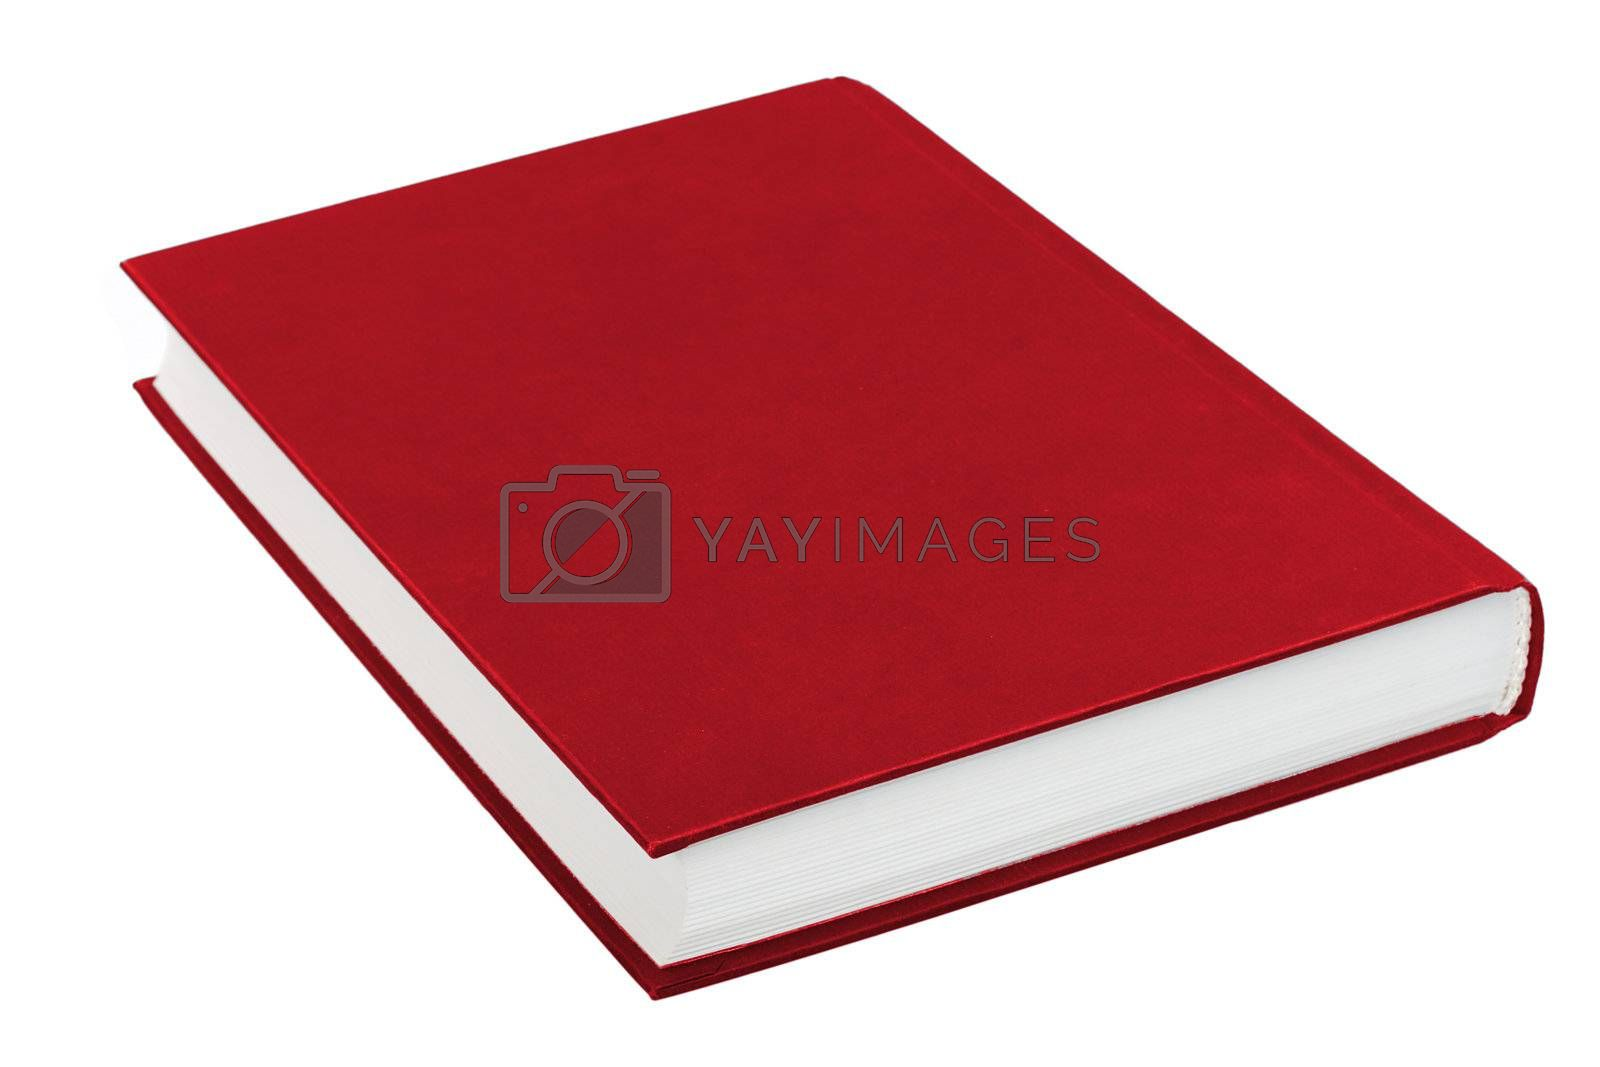 Royalty free image of red book by Alekcey